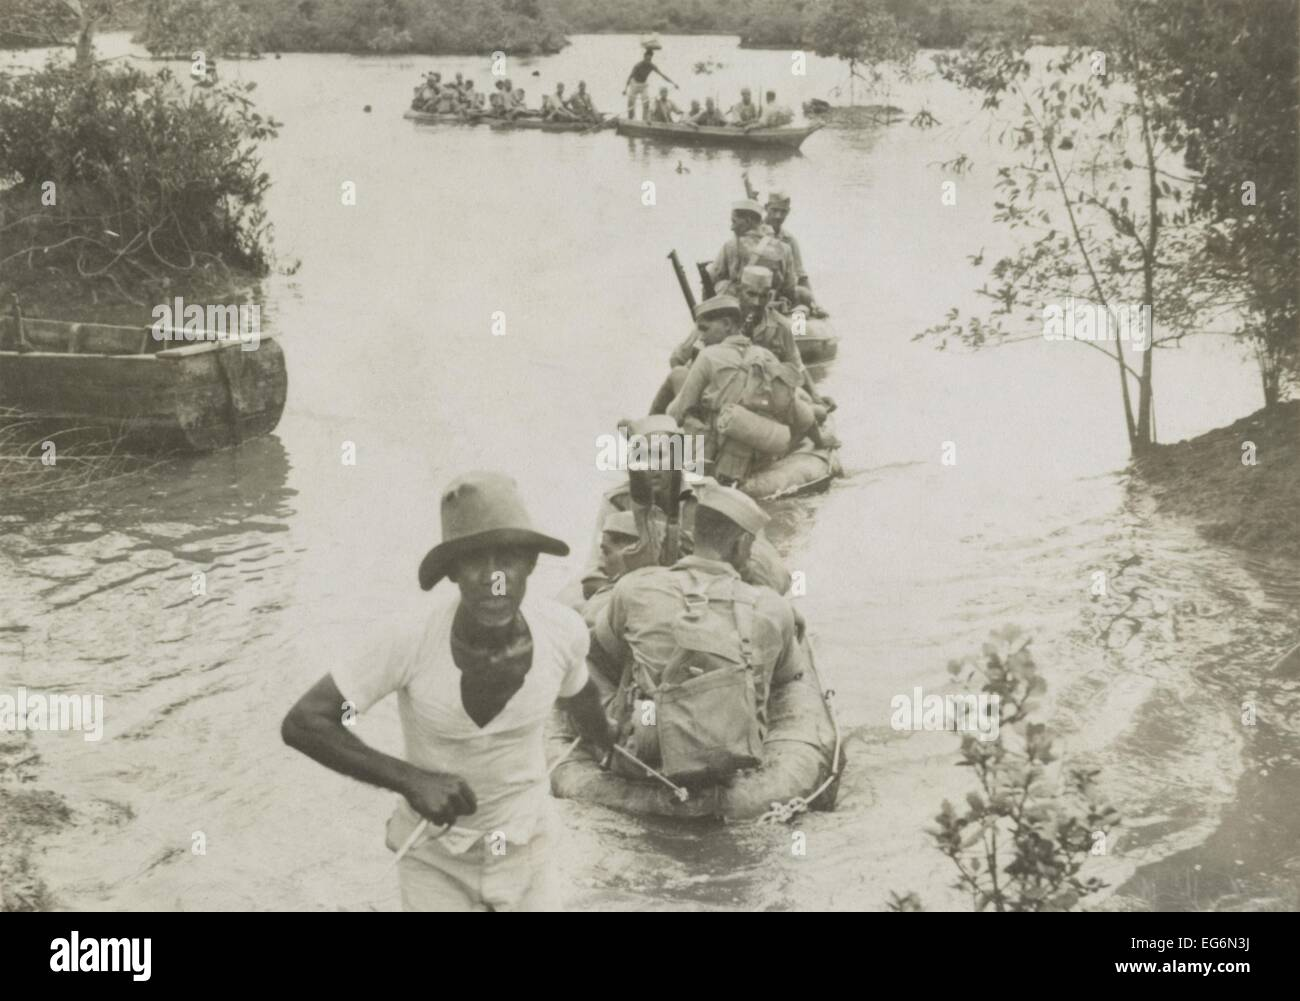 British Indian Army crossing a river in collapsible rubber boats in Singapore, Malaya. Ca. Nov.-Dec. 1941. World - Stock Image